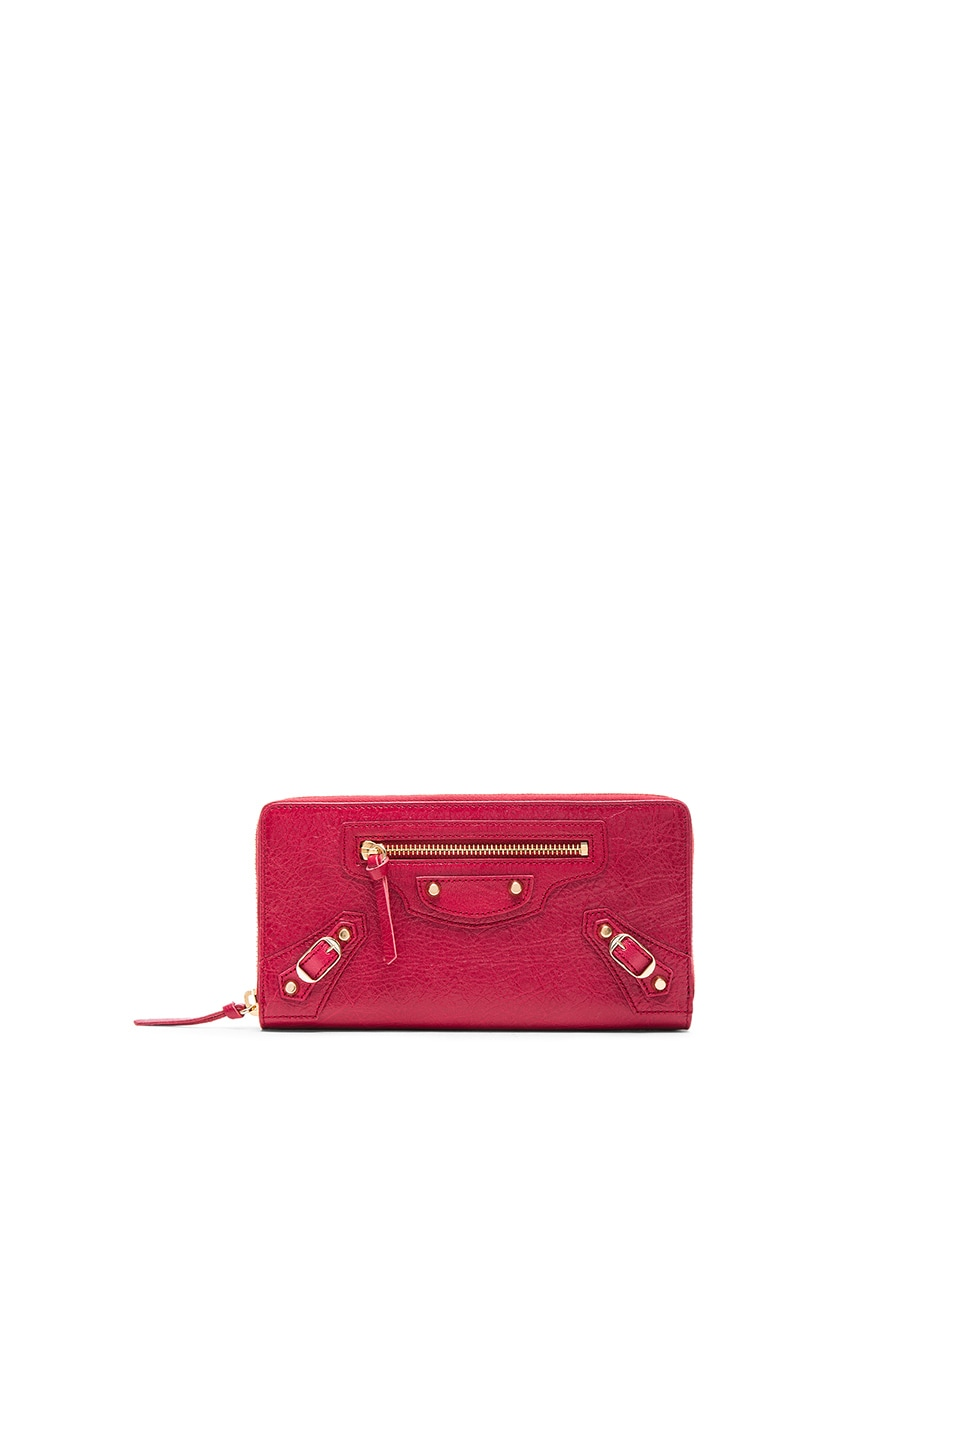 Image 1 of Balenciaga Classic Continental Wallet in Saffron Red